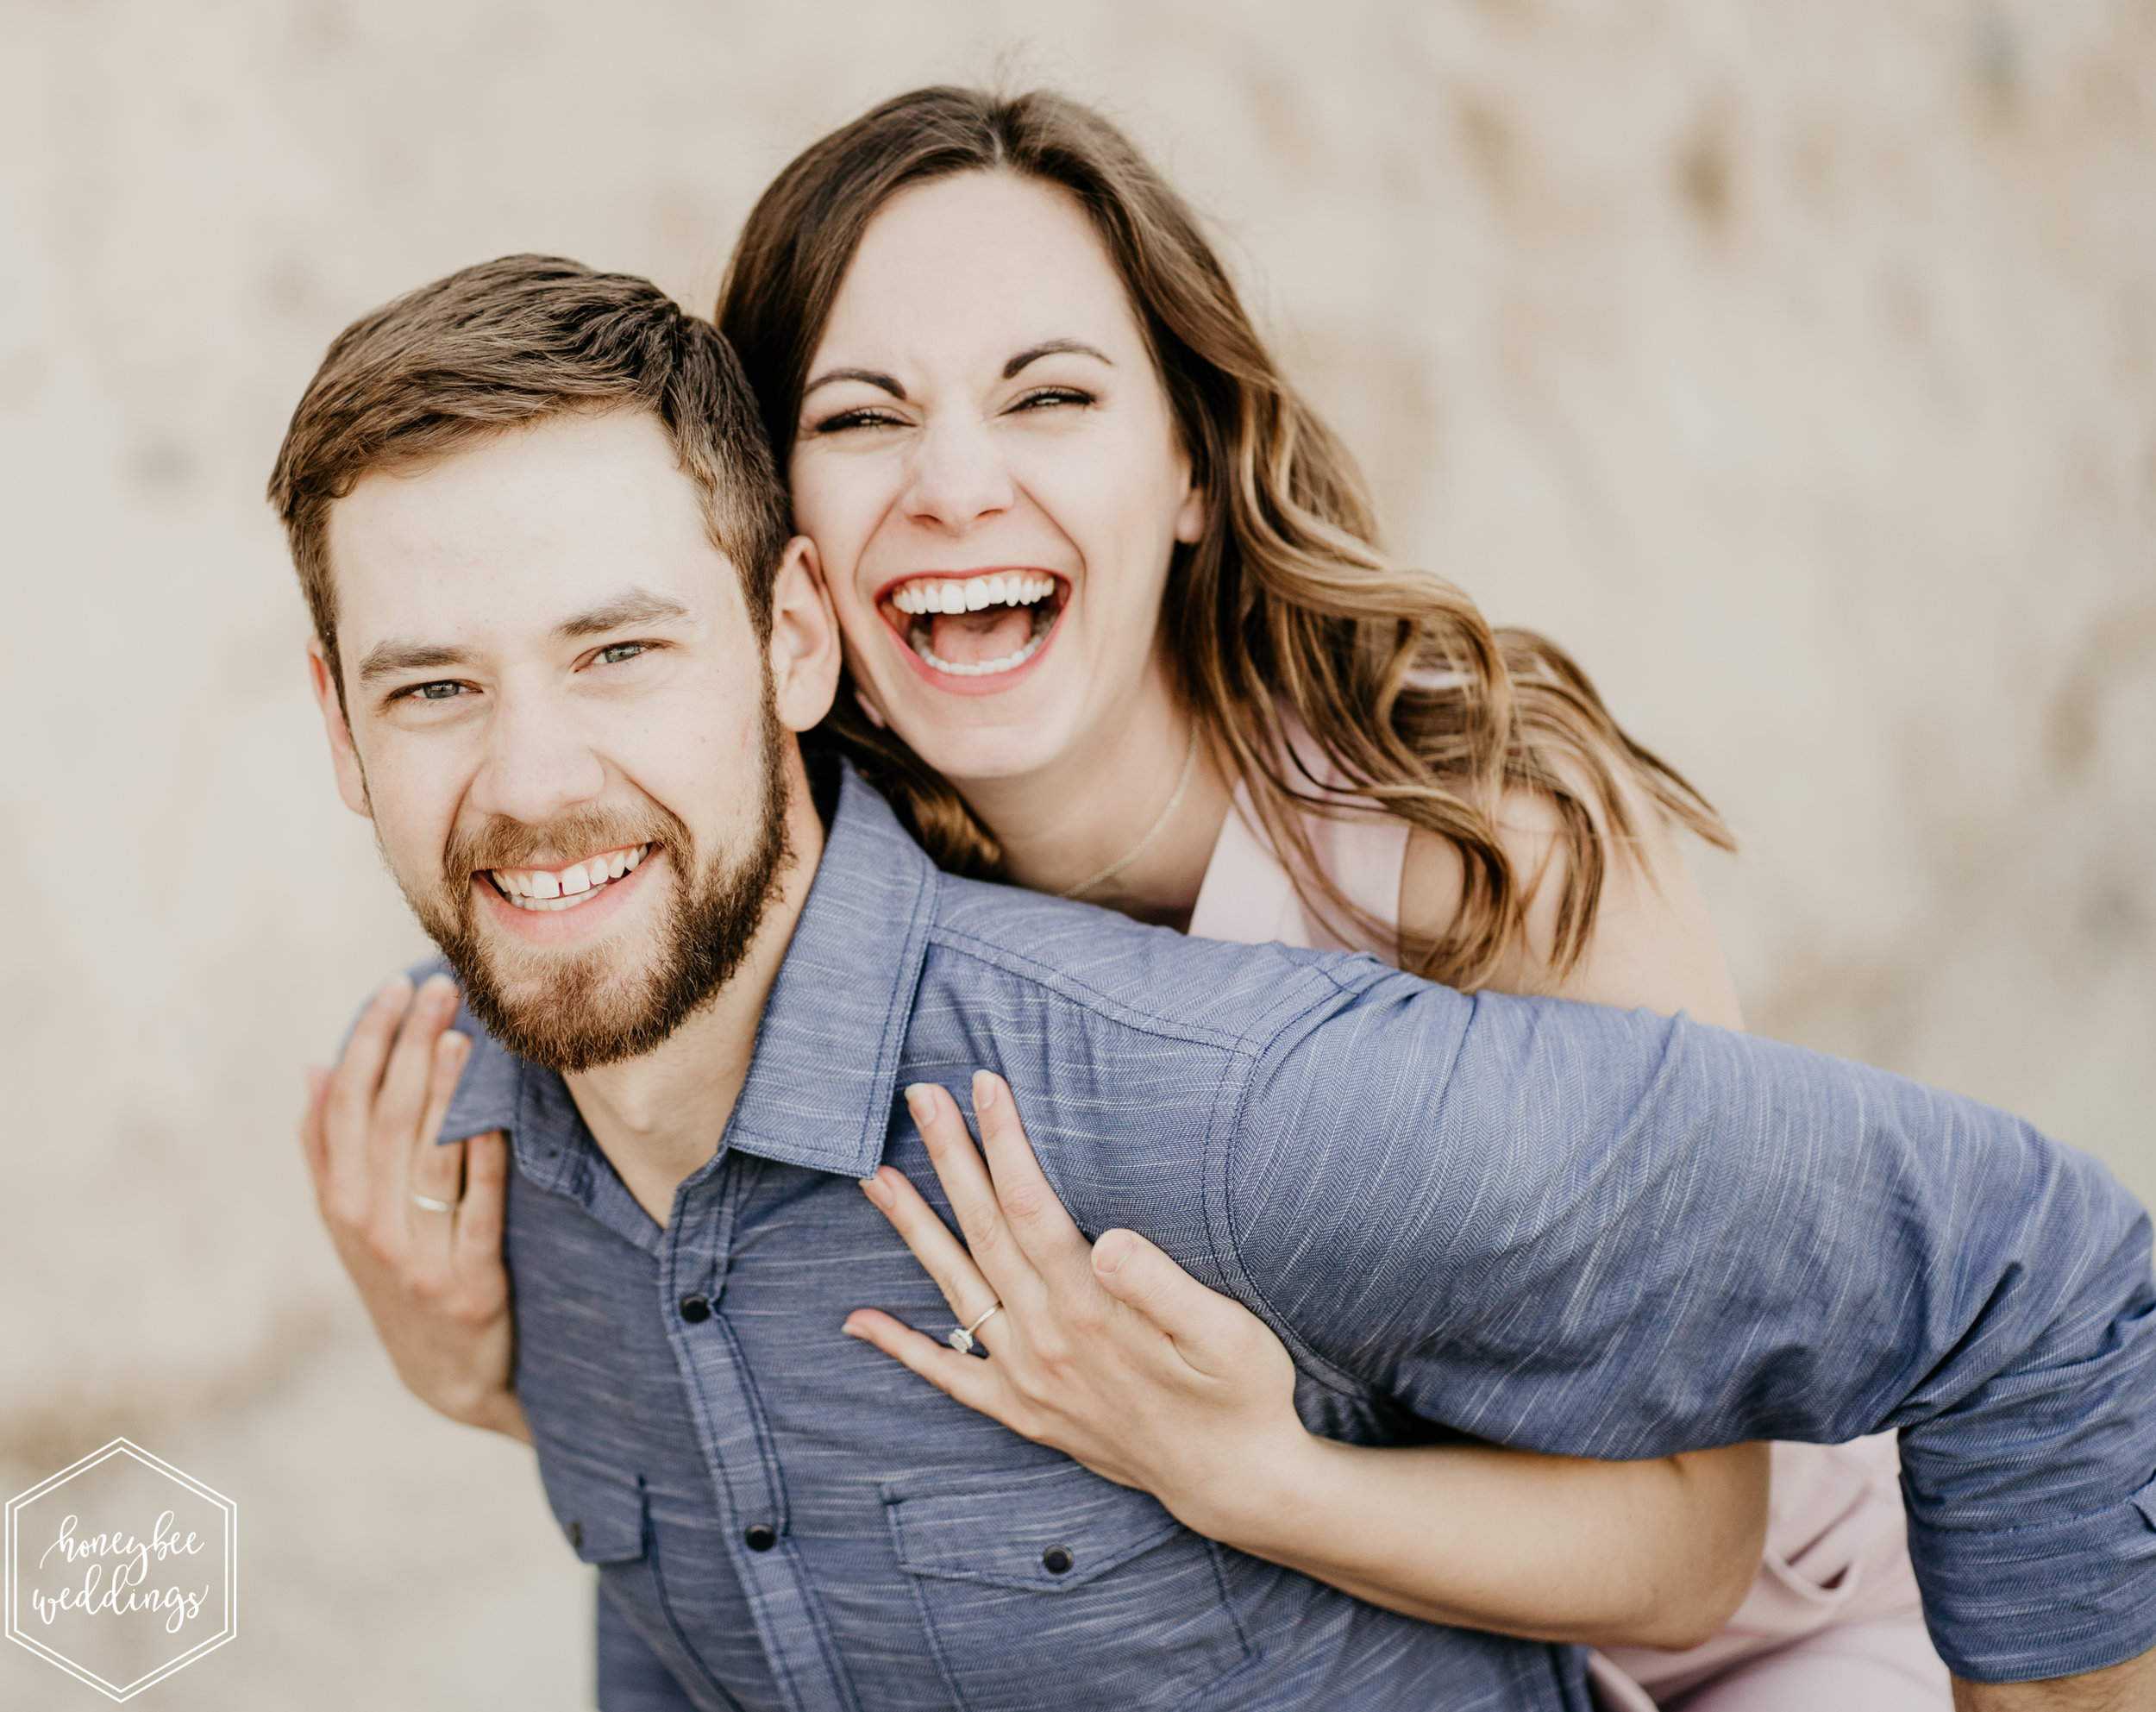 133Montana Wedding Photographer_Polson Engagement Session_Carrie & Matt_Honeybee Weddings_May 11, 2019-226.jpg